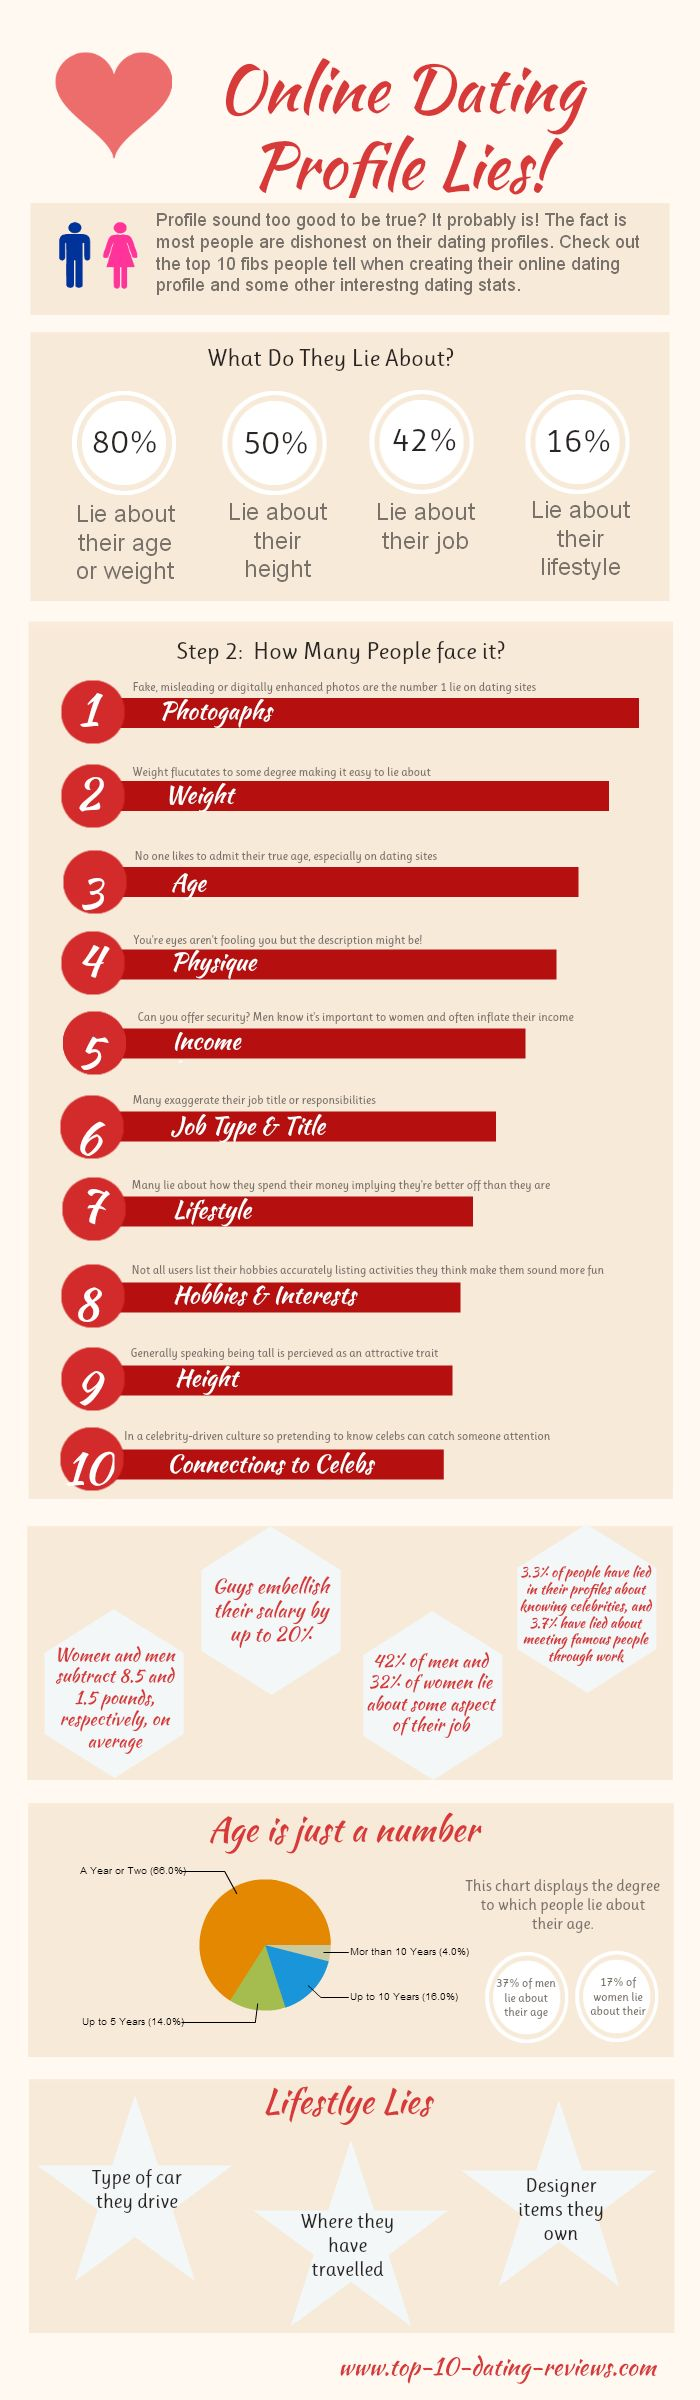 An infographic about online dating profiles and the lengths some people go to to attract attention. Embed on your site for free. Embed code at http://www.top-10-dating-reviews.com/category/free-dating-infographics/